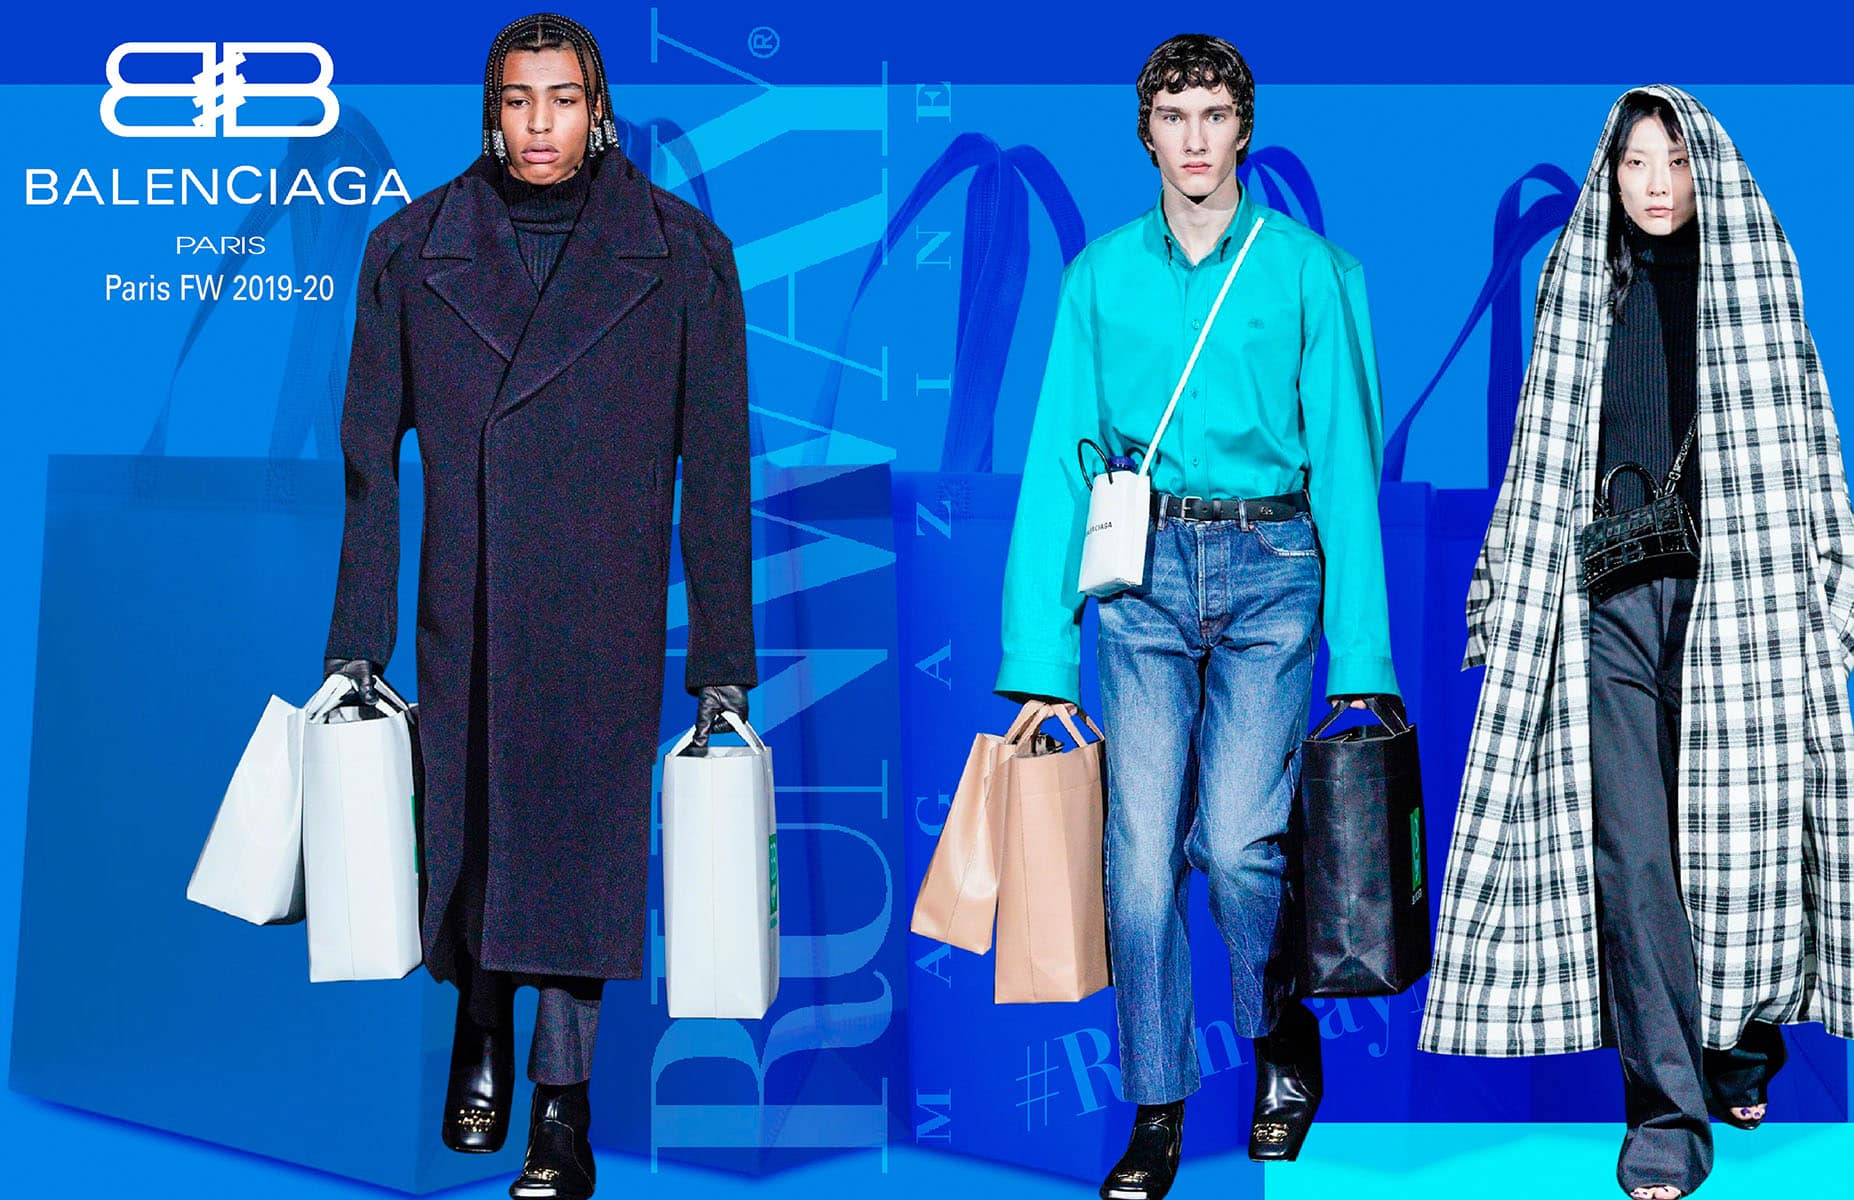 Balenciaga Fall Winter 2019-2020 Paris by RUNWAY MAGAZINE